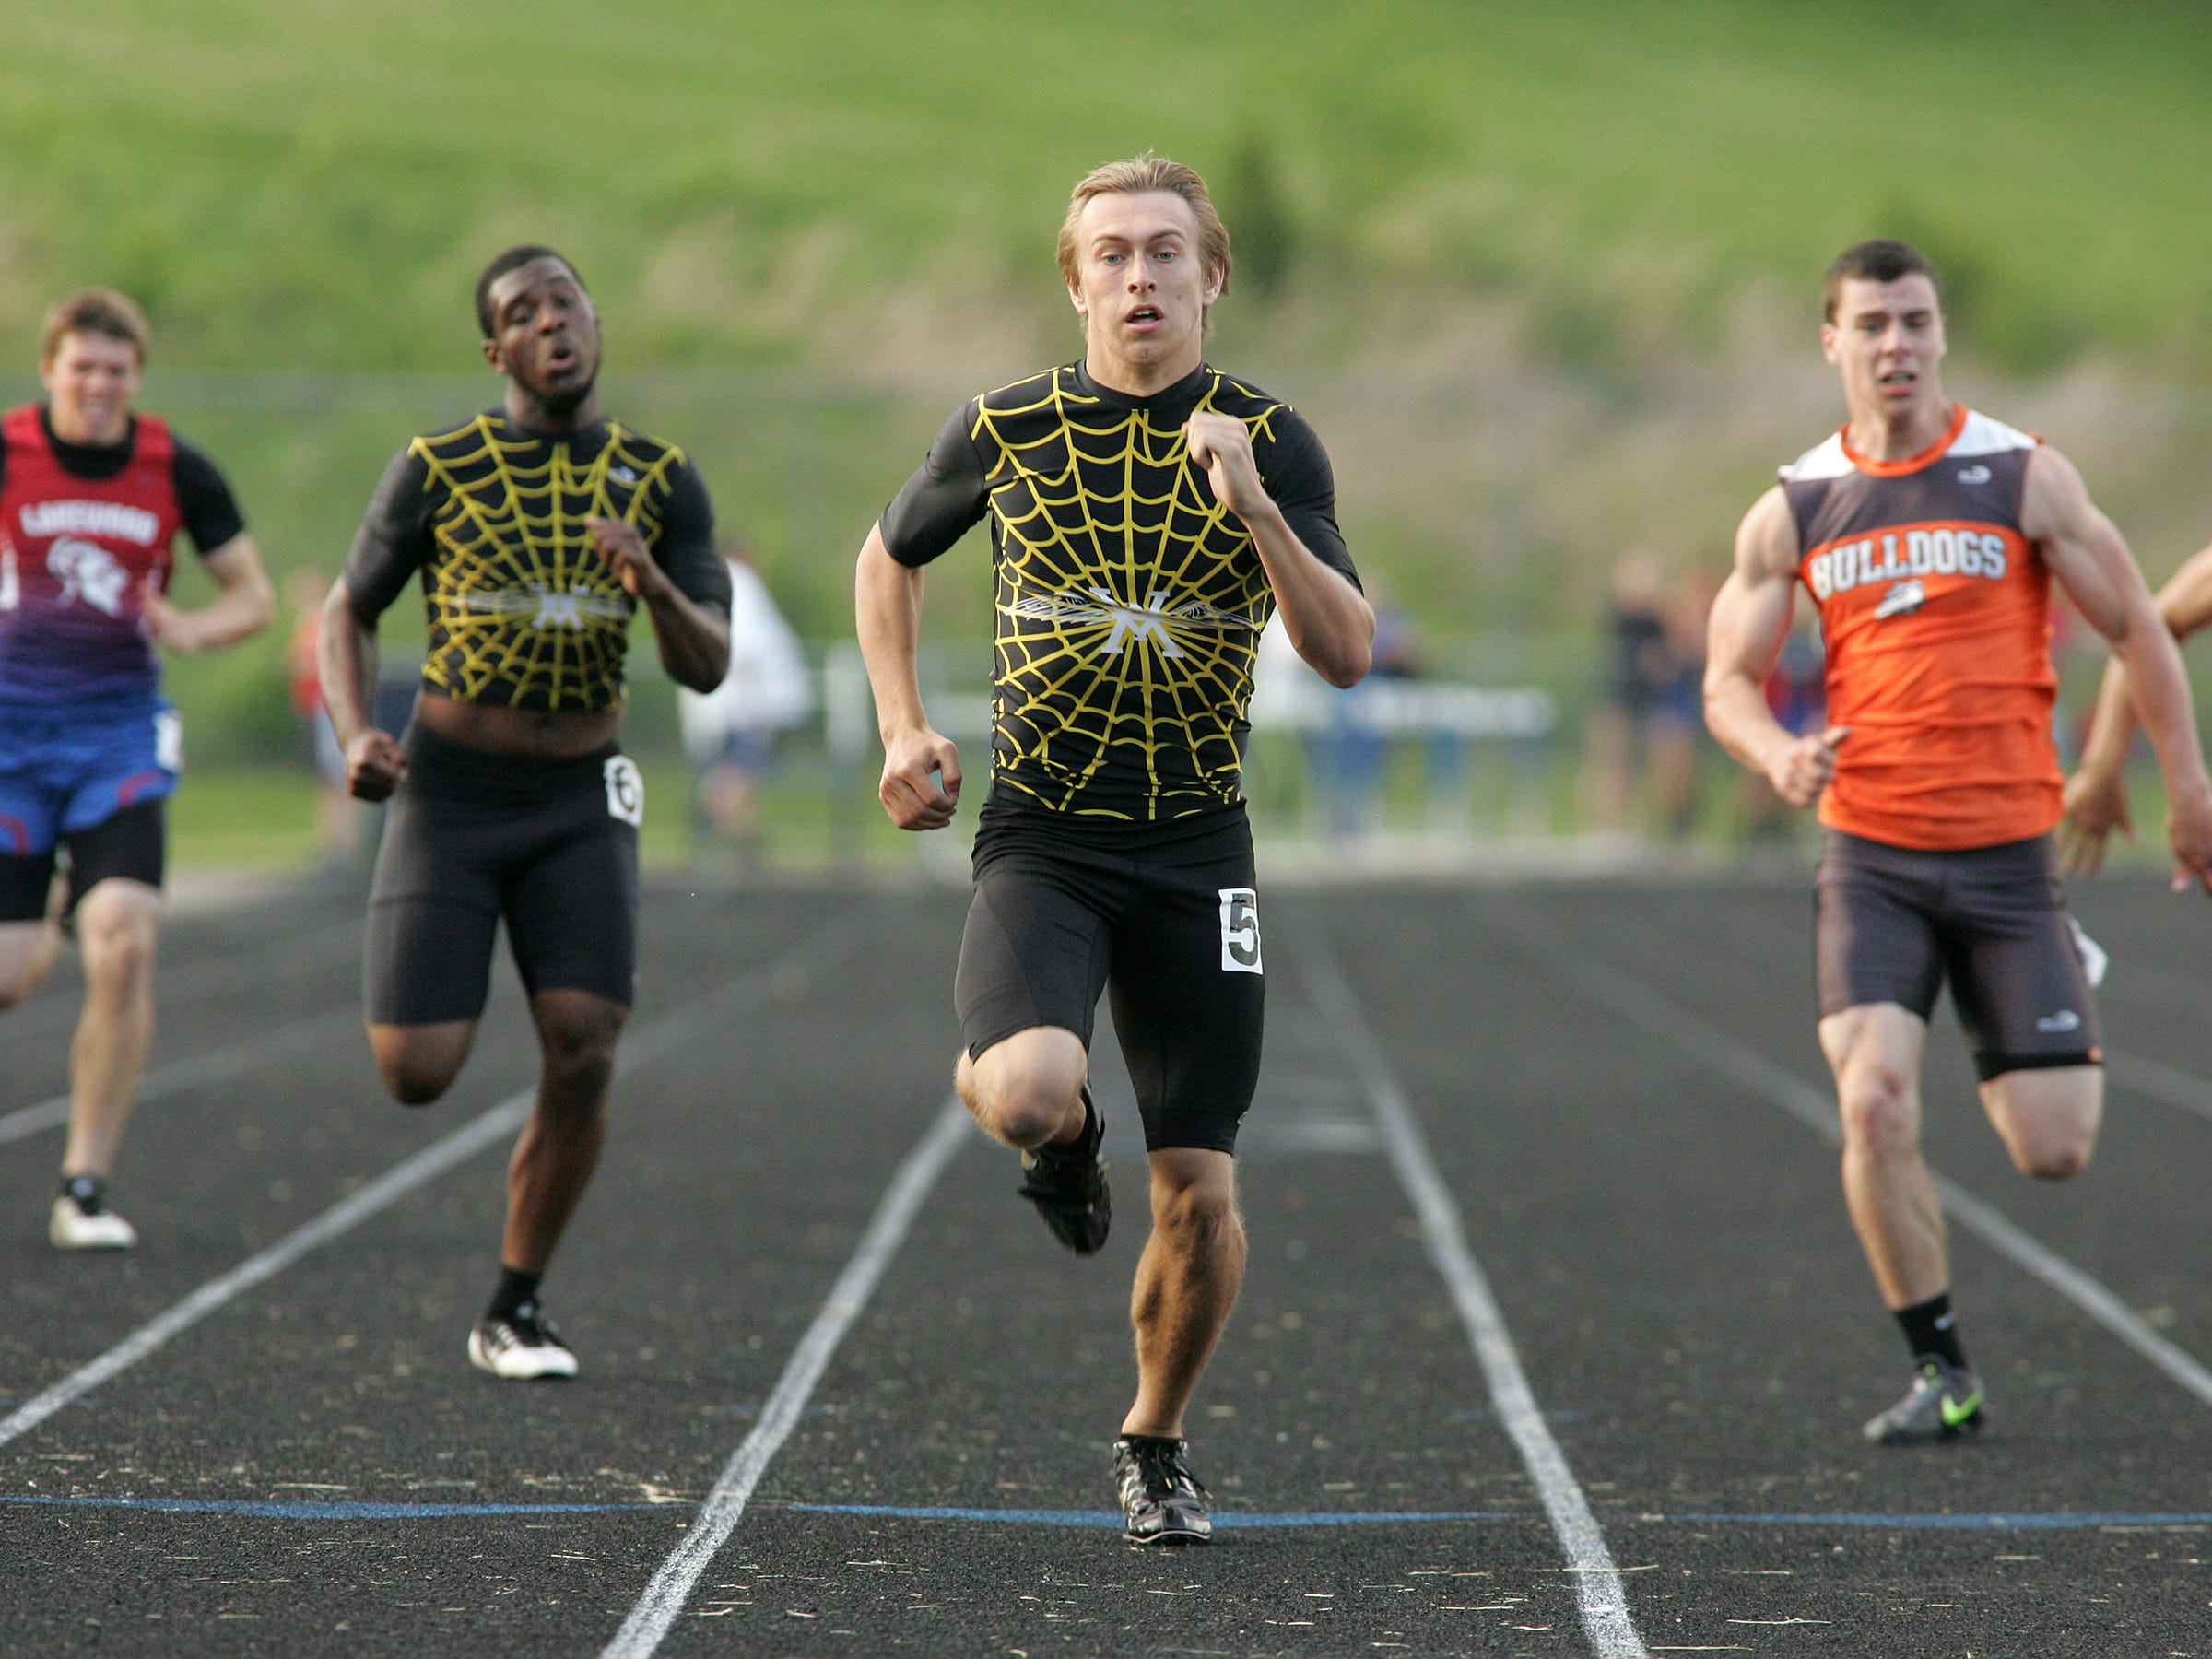 Watkins Memorial senior Evan Caniff, center, nears the finish line in the 200 this past Friday during the Licking County League meet. Caniff won the event, and teammate Solomon Broomfield, left, placed third.